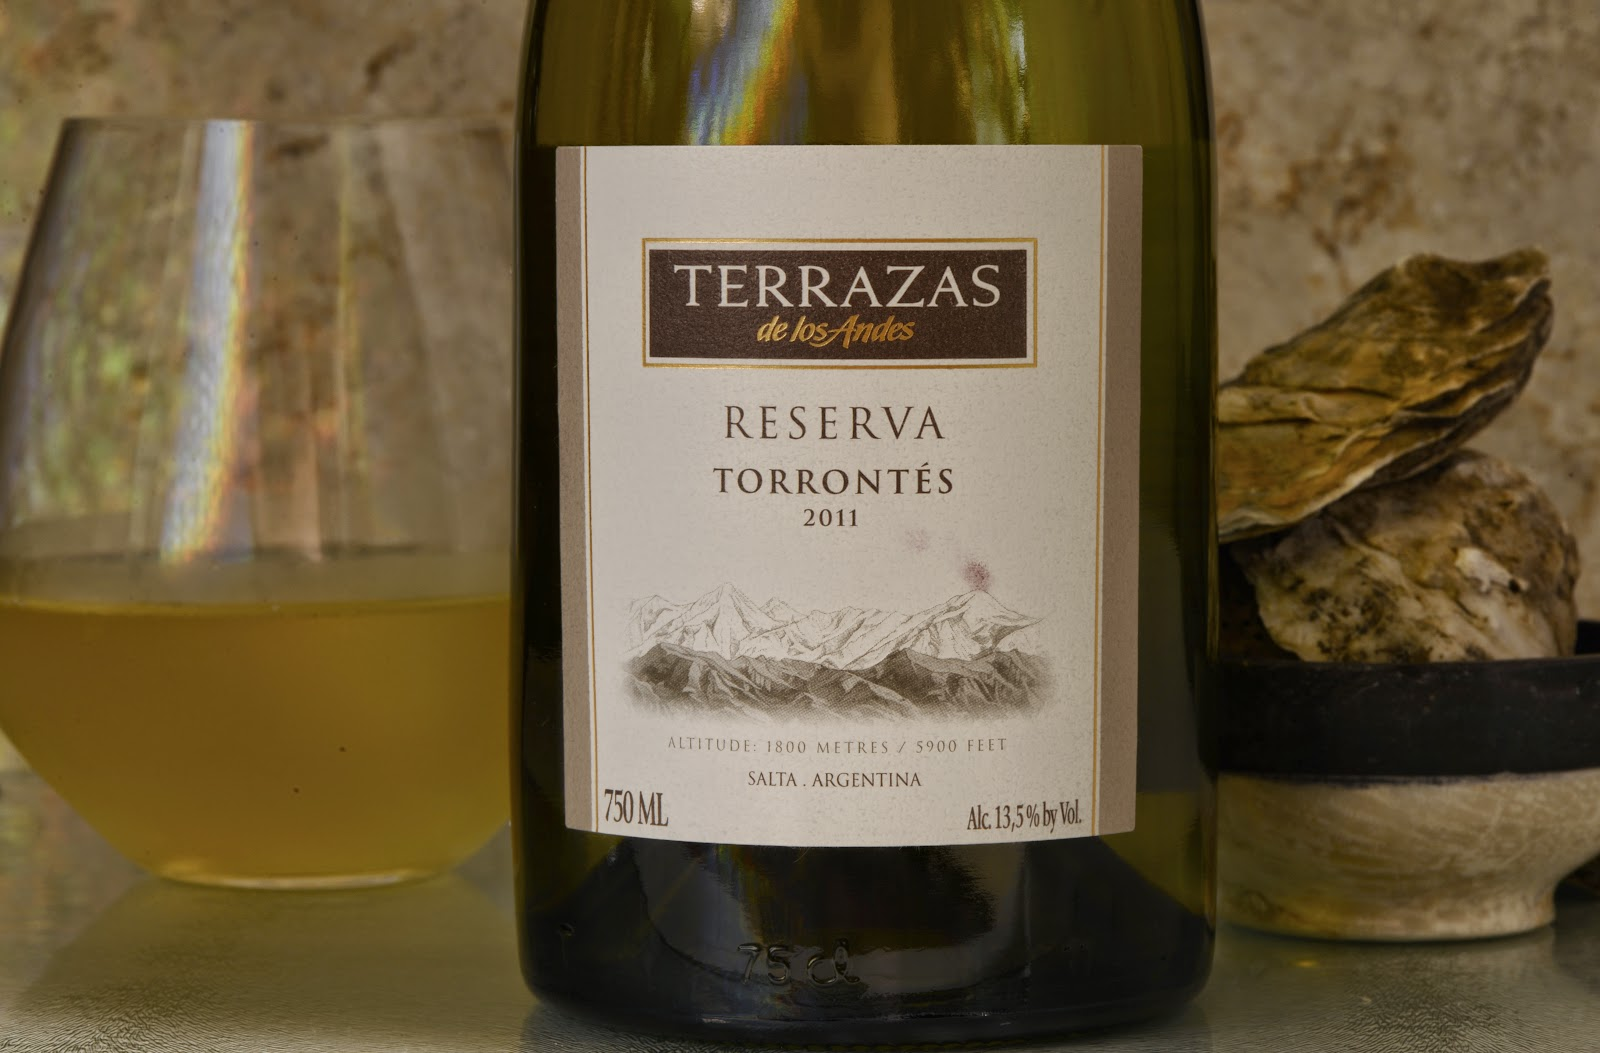 New Hampshire Wine Man Terrazas 2011 Torrontés Reserva